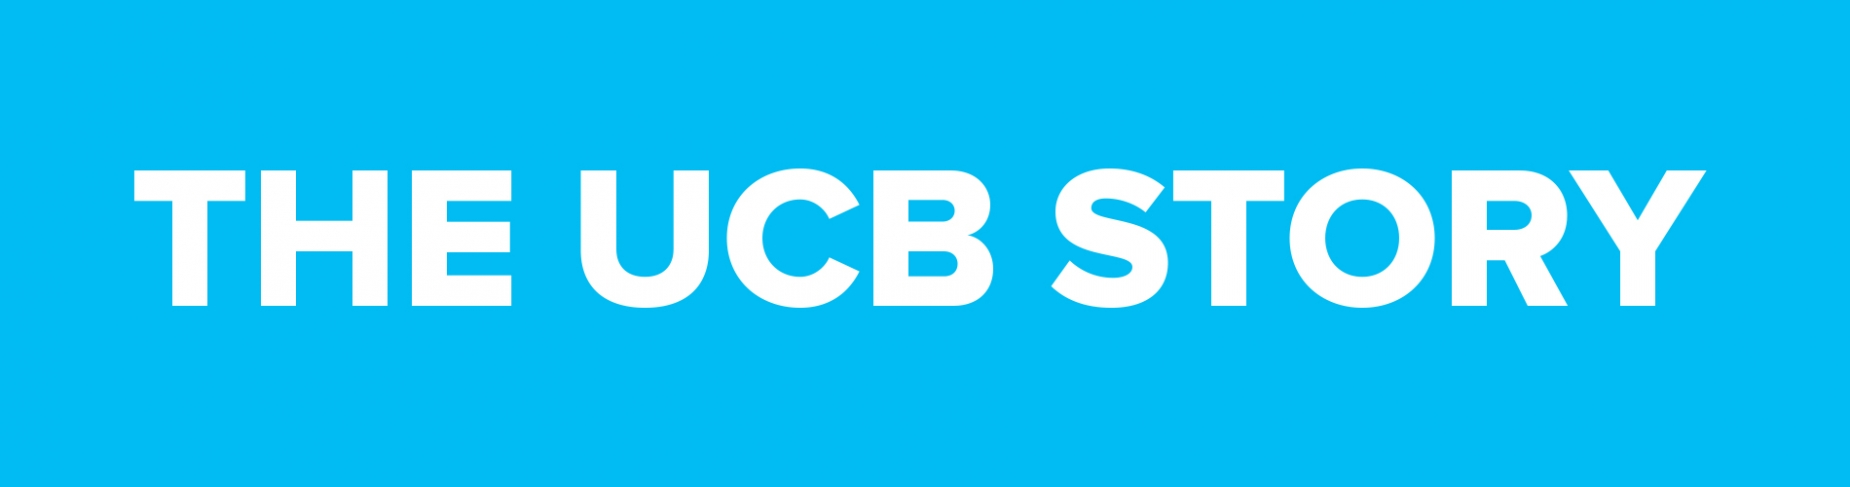 The UCB Story